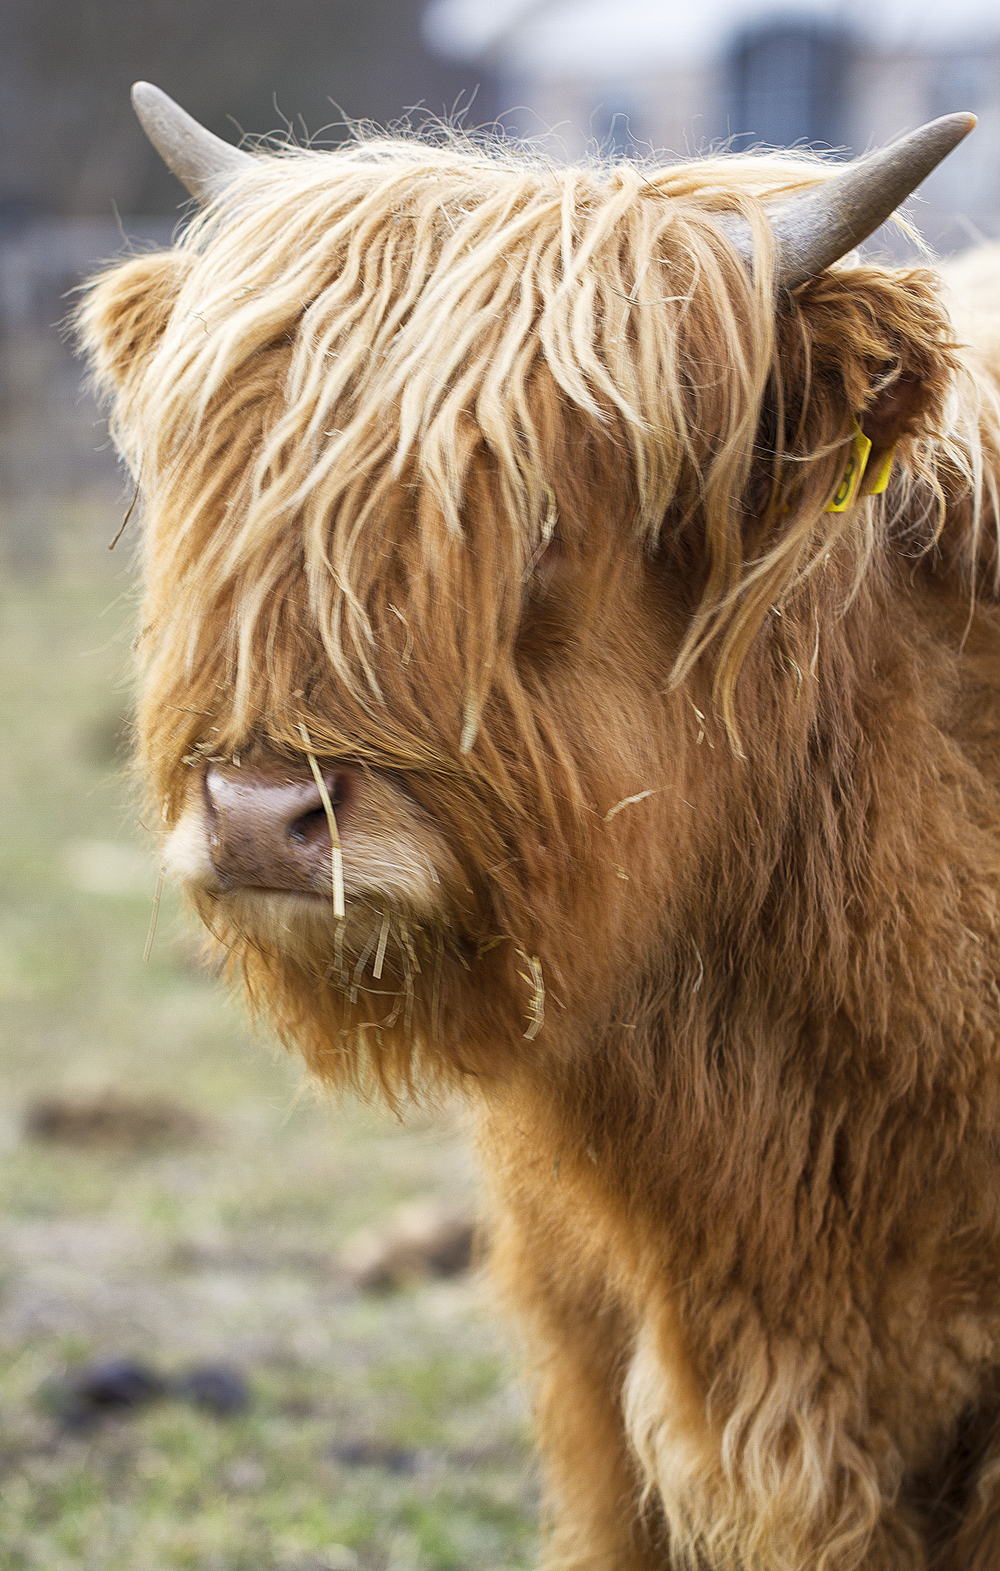 Anyone who knows a hairdresser Read about Highland cattle (Scottish Gaelic: Bò Ghàidhealach; Scots: Heilan coo) Comments